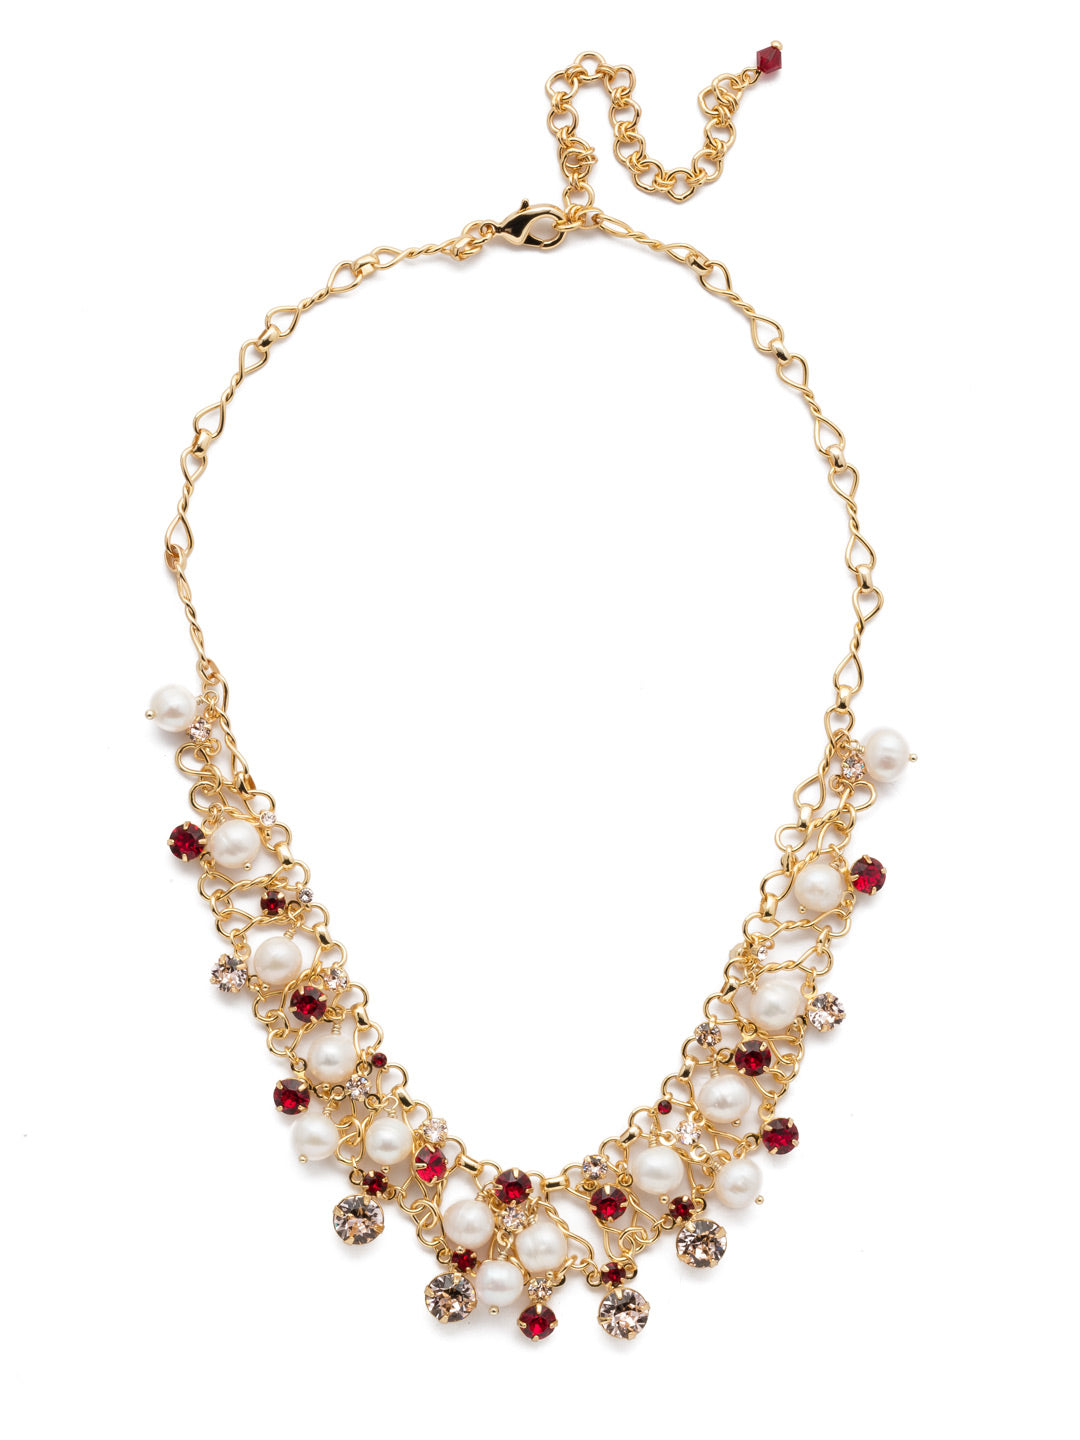 Clustered Crystal and Bead Tennis Necklace - NCF5BGSRC